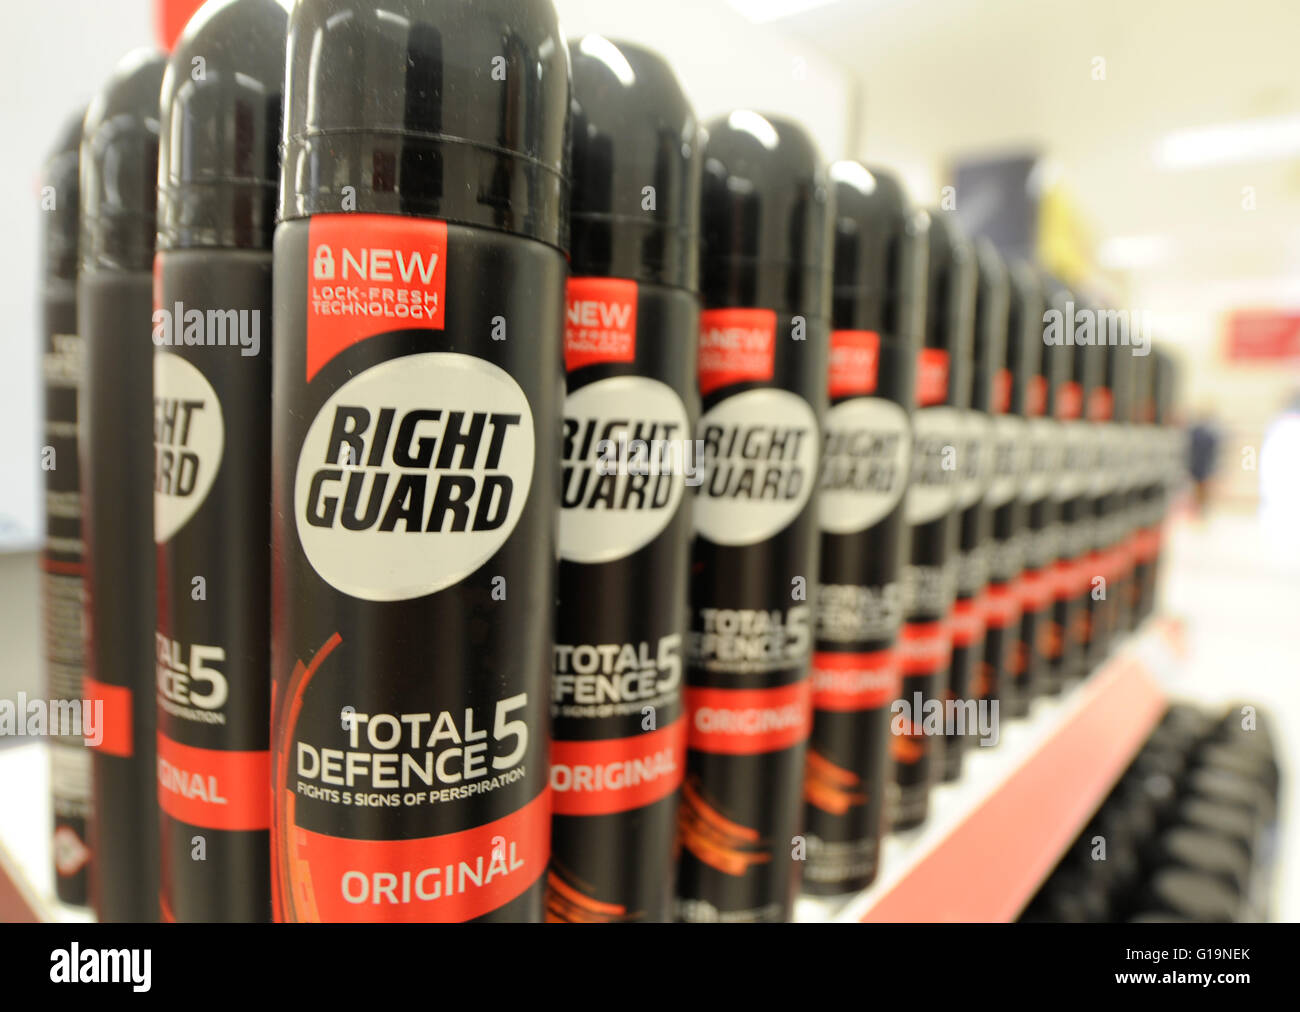 Right Guard lined up in Boots pharmacy - Stock Image